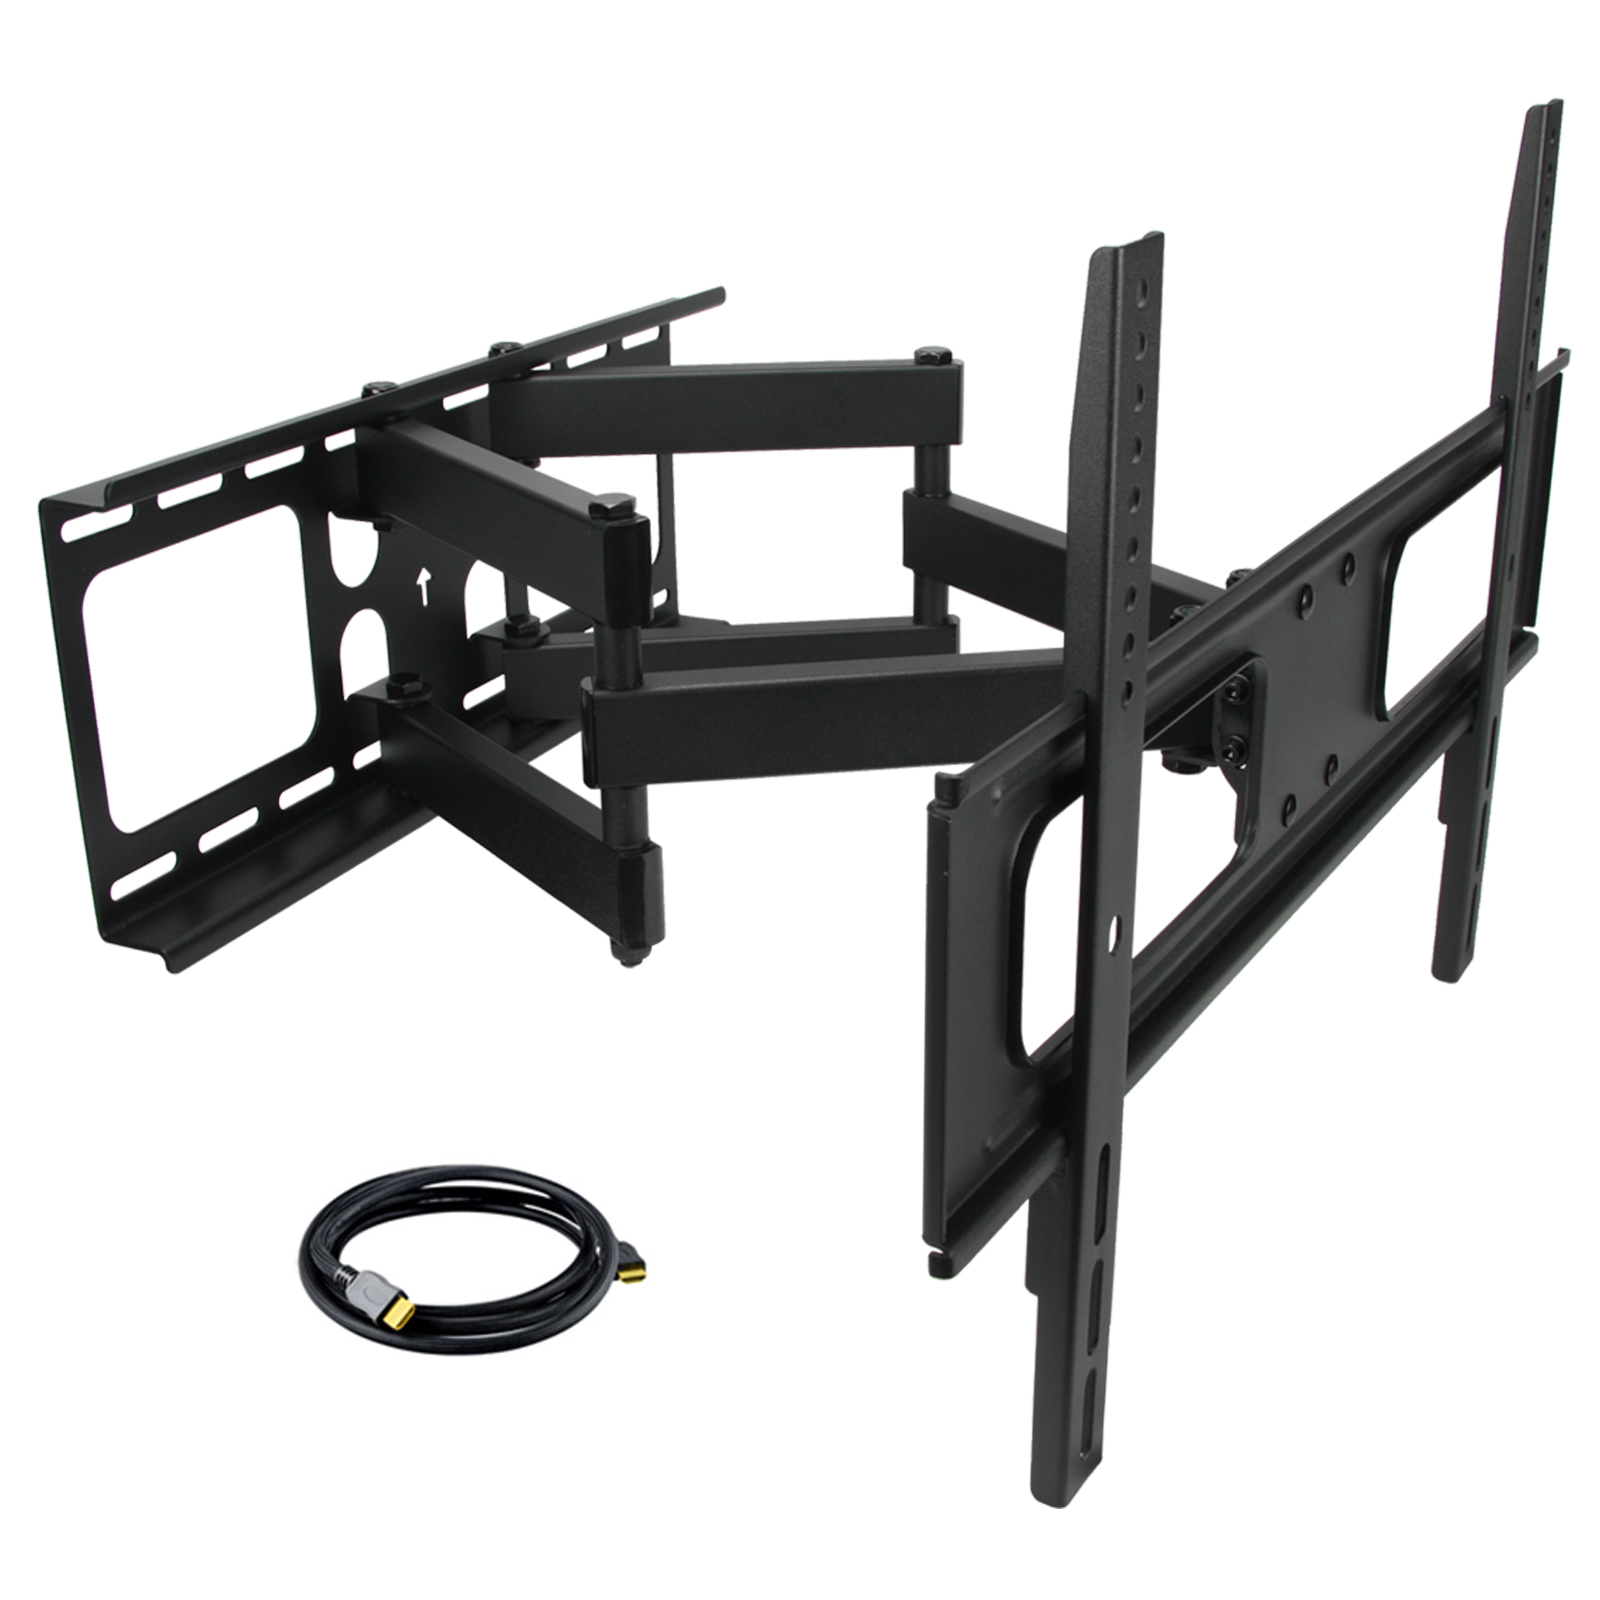 MegaMounts Full Motion Double Articulating Wall Mount for 32-70 Inch Displays with HDMI Cable